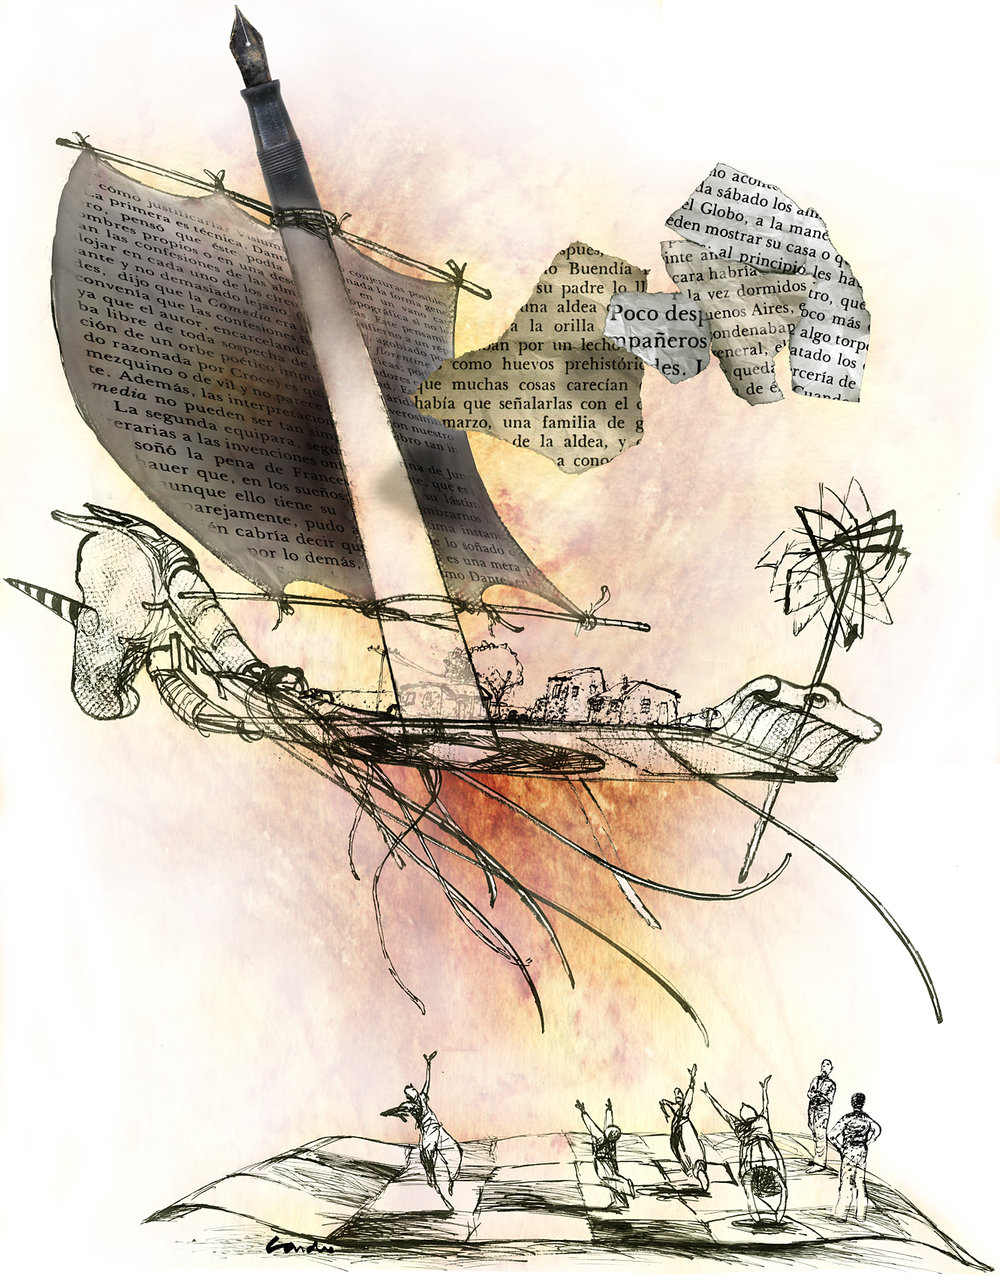 Eyewitness Horacio Cardo Ships Tall Google Search Book Covers Diagrams Bloody From A Report On Latin American Literature